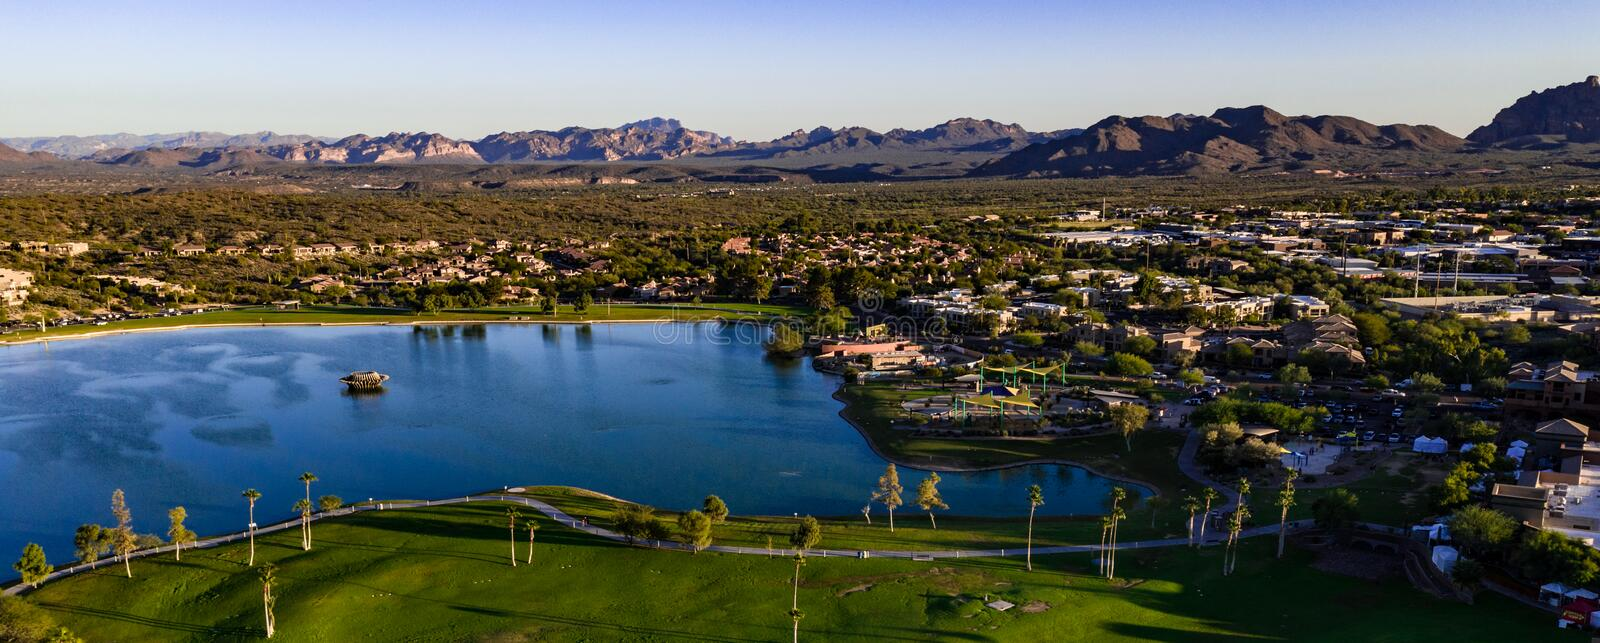 Aerial, Drone View of Fountain Hills, Arizona royalty free stock image